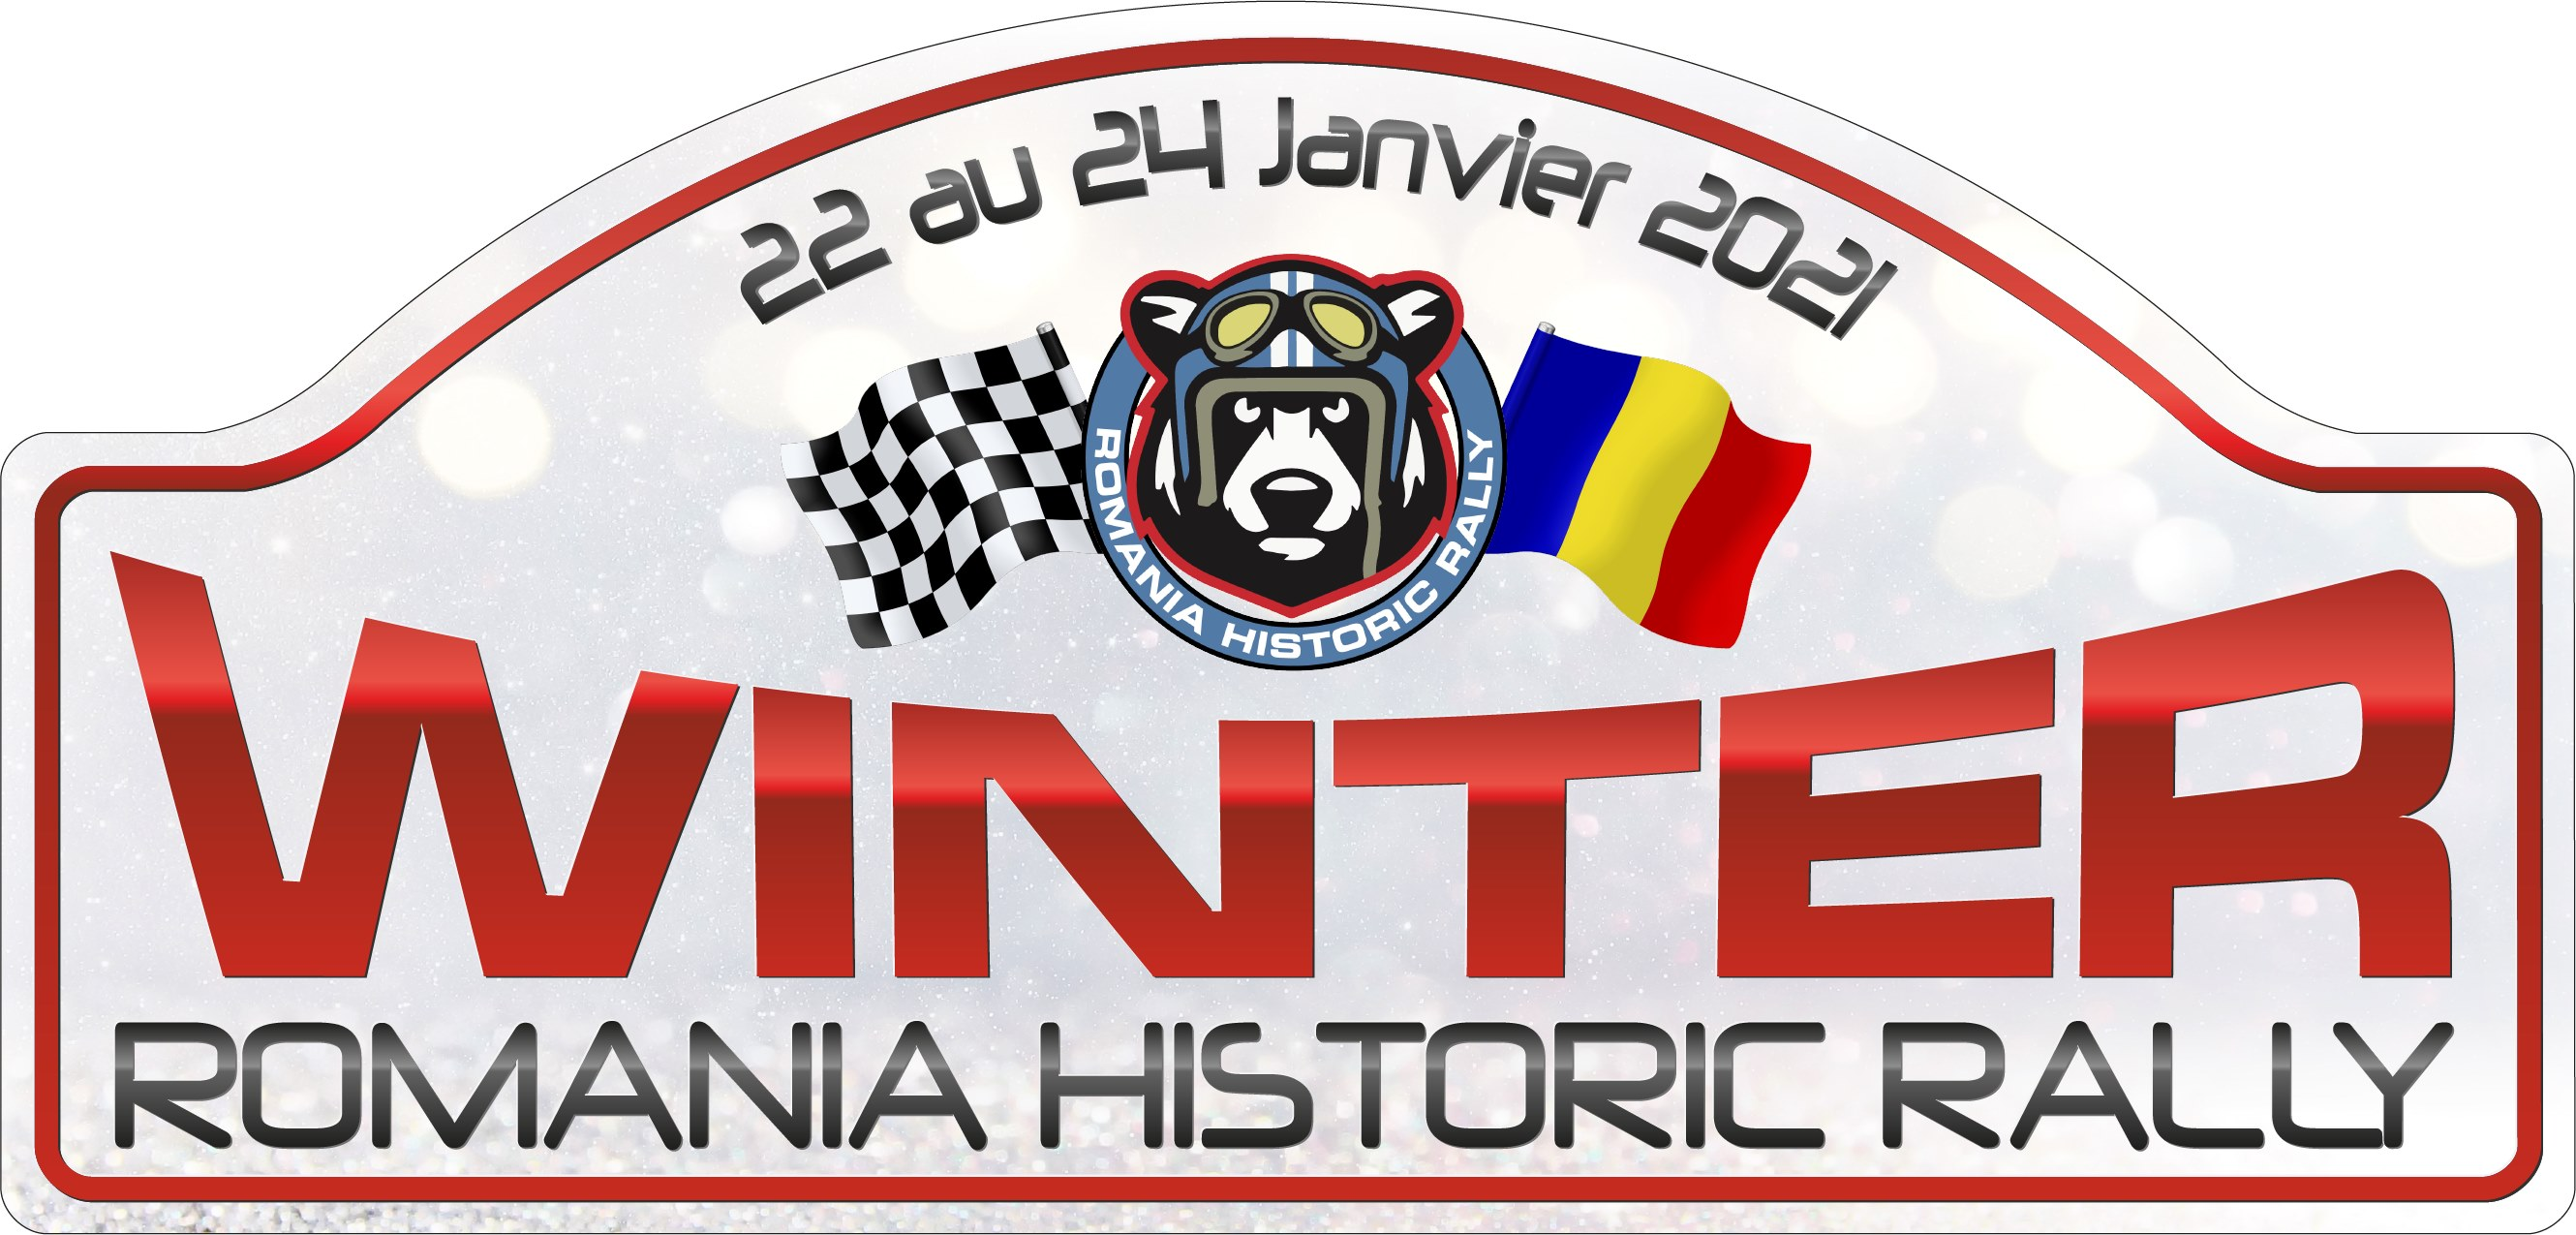 Programme TV Winter Romania Historic Rally